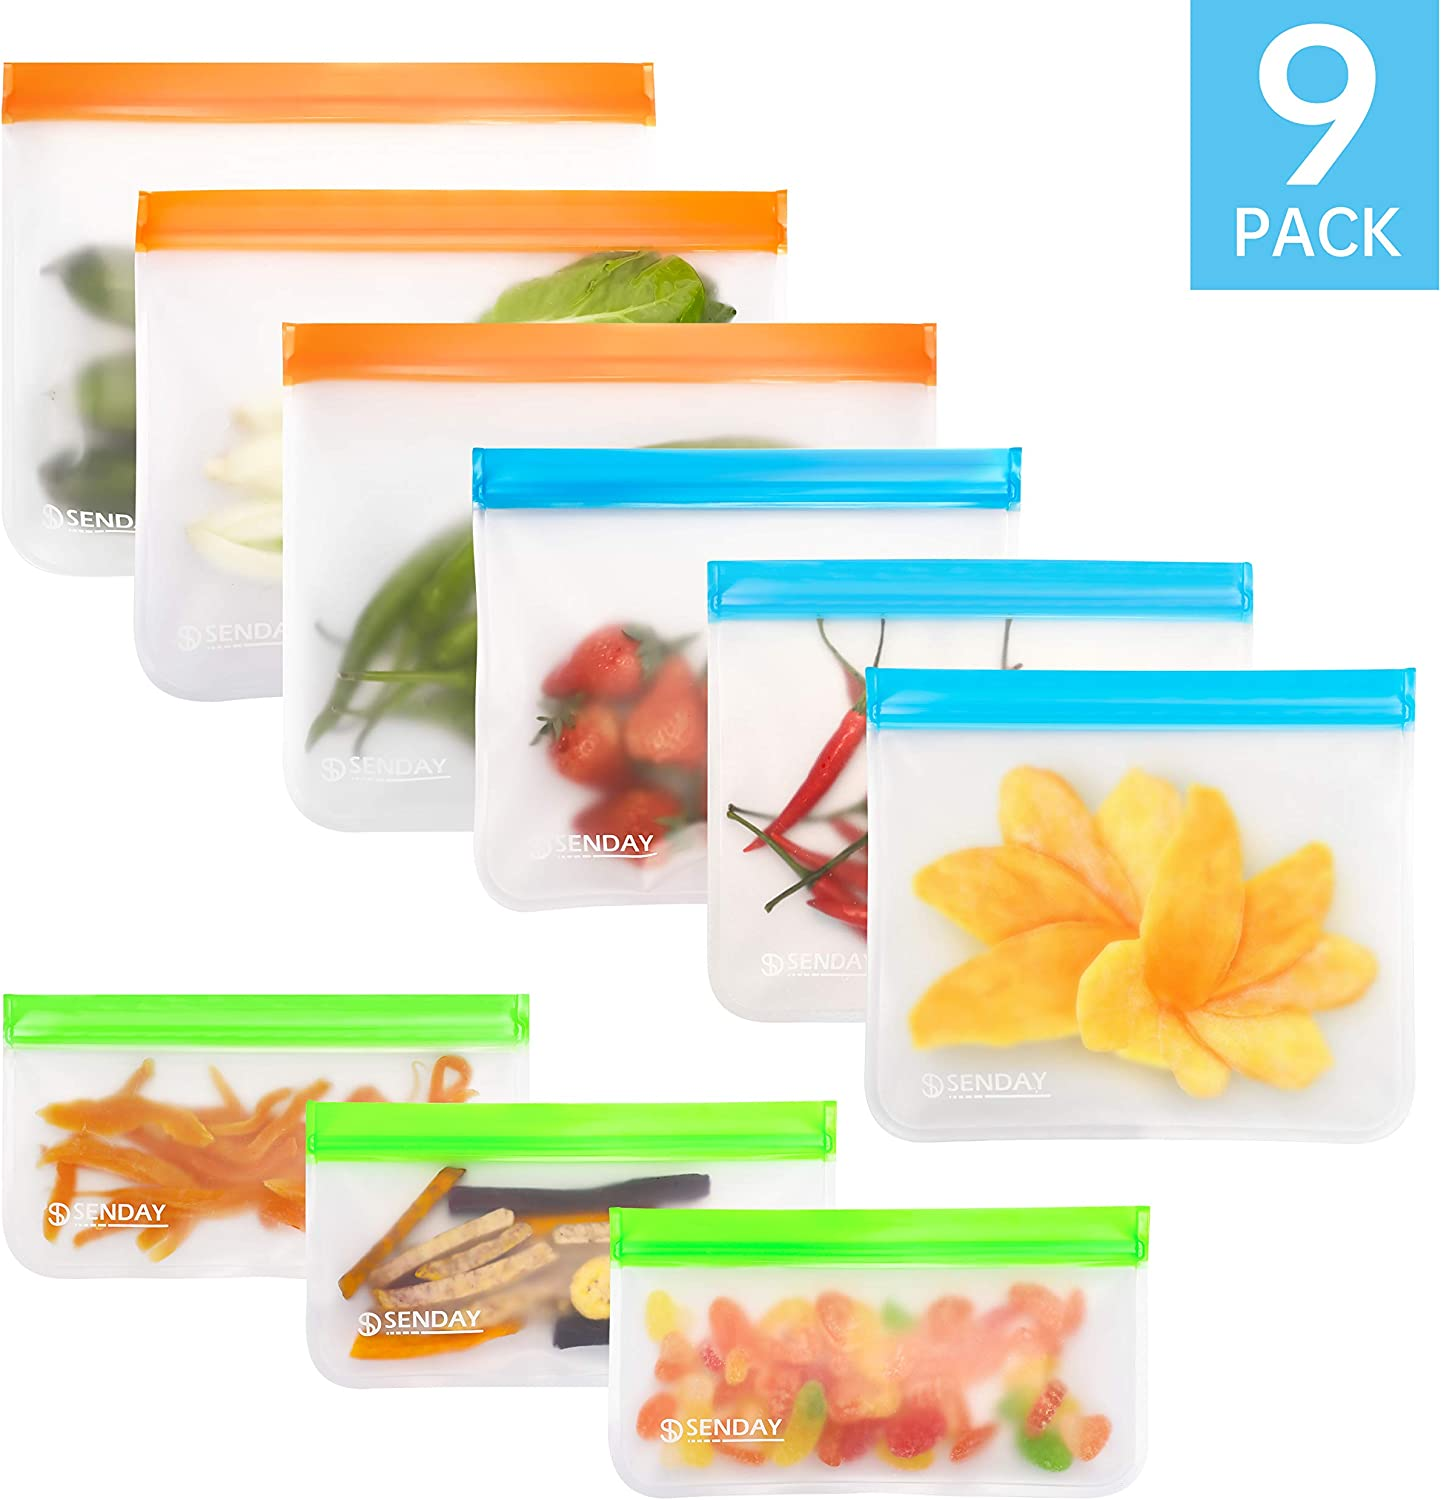 9 Pack Extra Thick BPA-Free Reusable Storage Bags(3 Freezer Safe Gallon Bags, 3 Leakproof Sandwich Bags, 3 Thick Snack Bags)PEVA Ziplock Lunch Bags for Food Marinate Home Travel Fruit Cereal Organizer